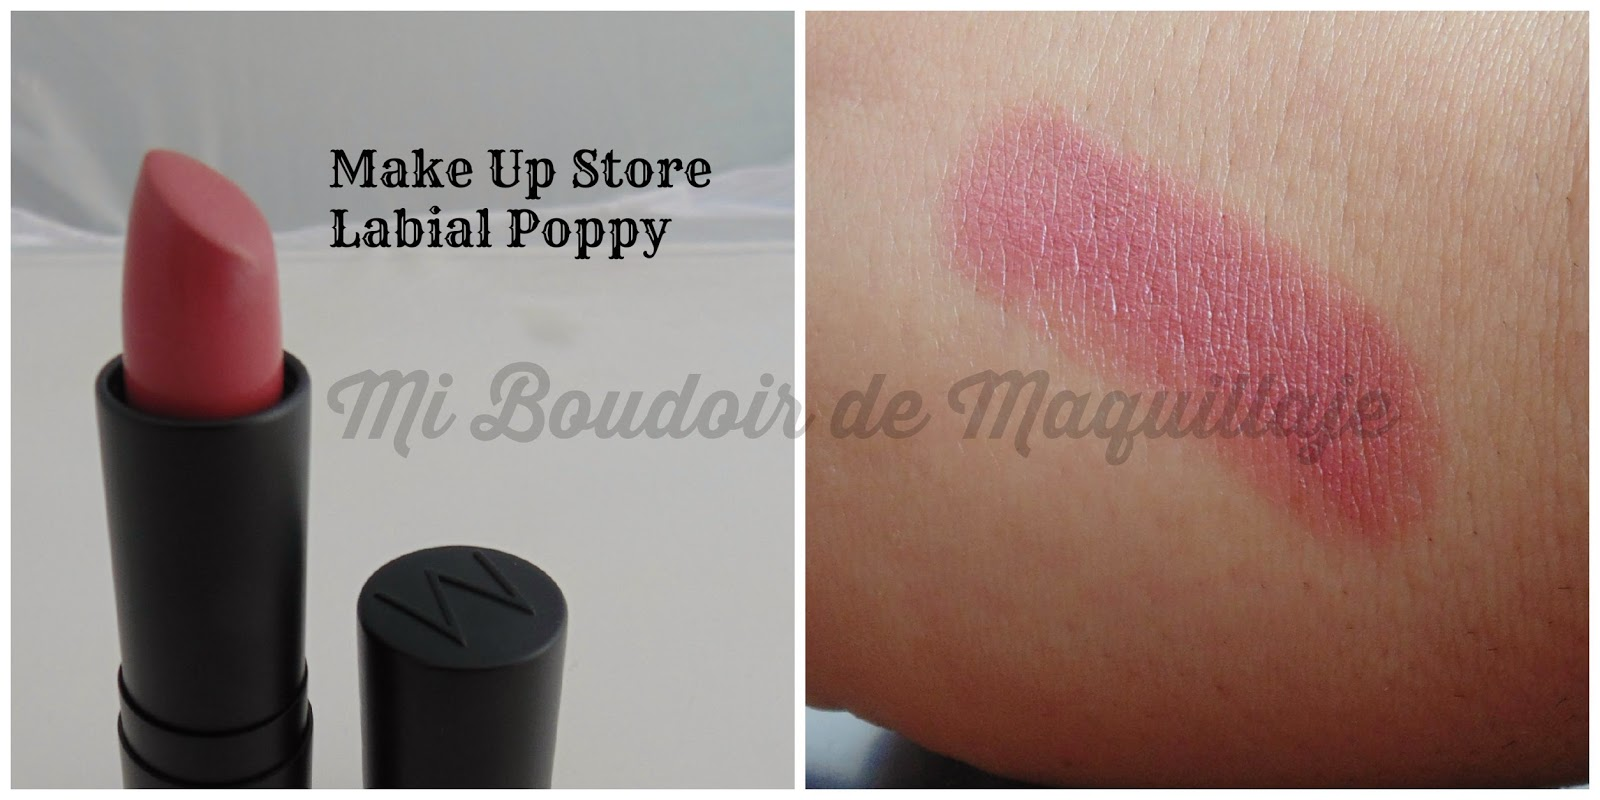 Poppy labial makeup store